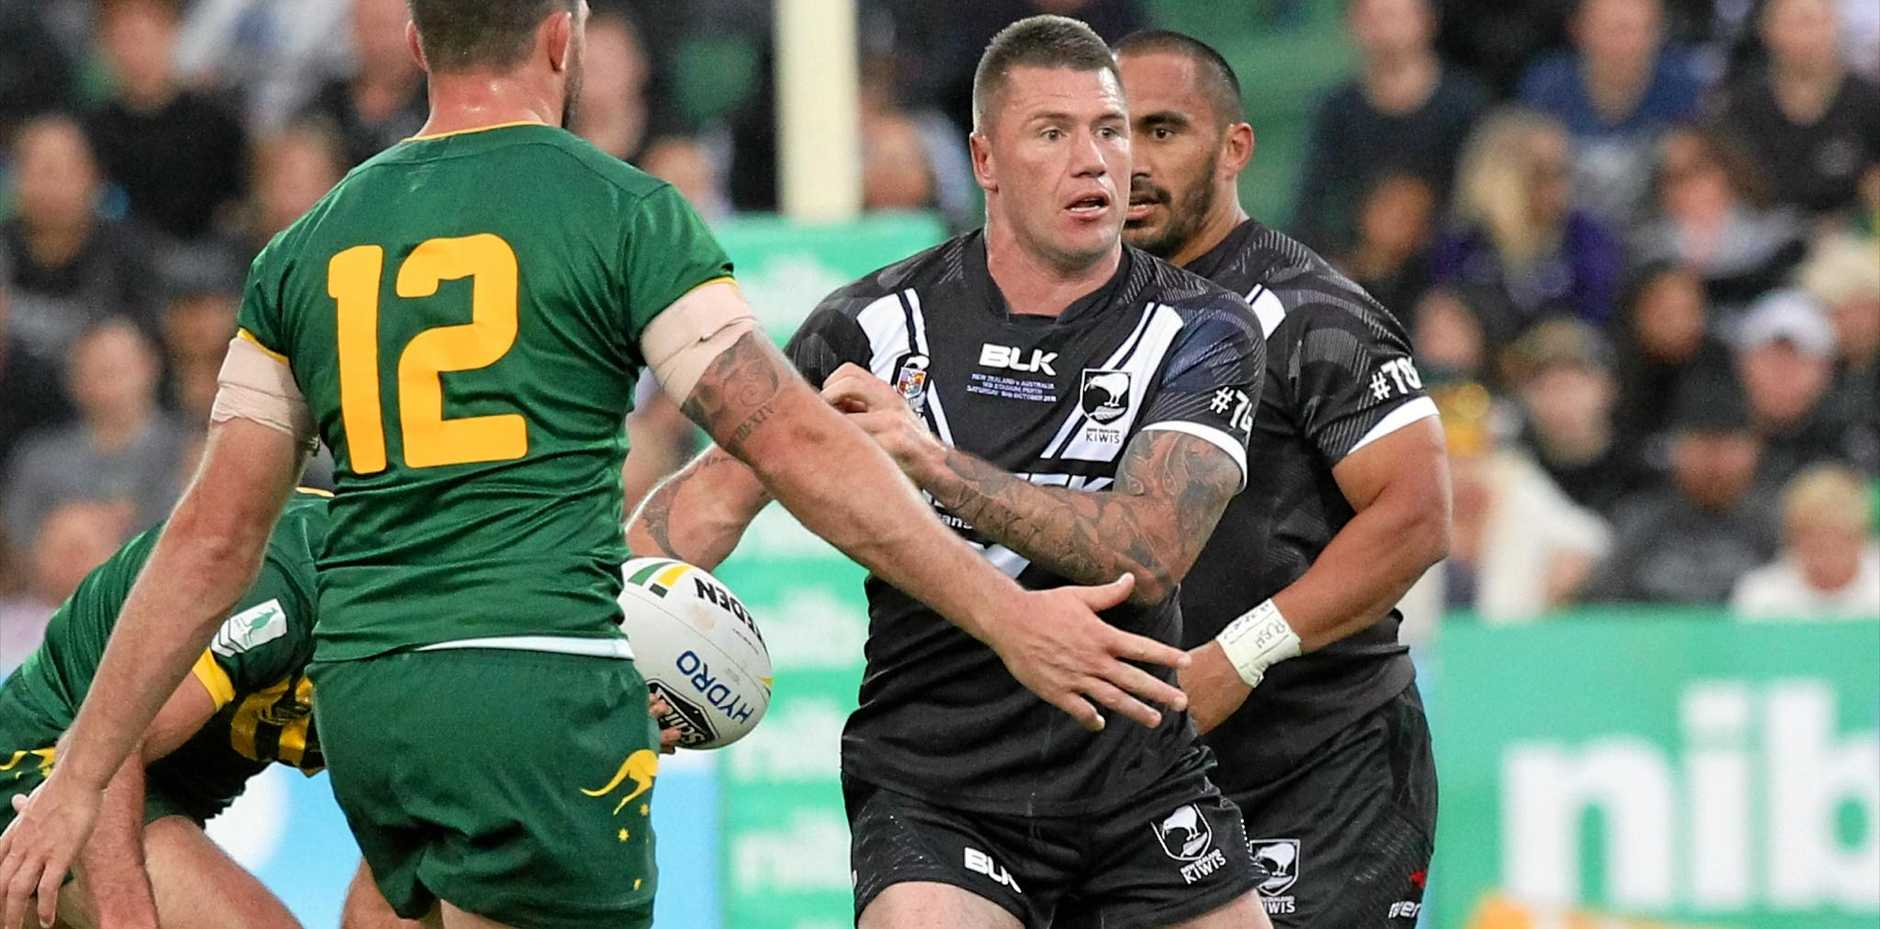 Shaun Kenny-Dowall of the Kiwis failed to repay his coach's faith in him.